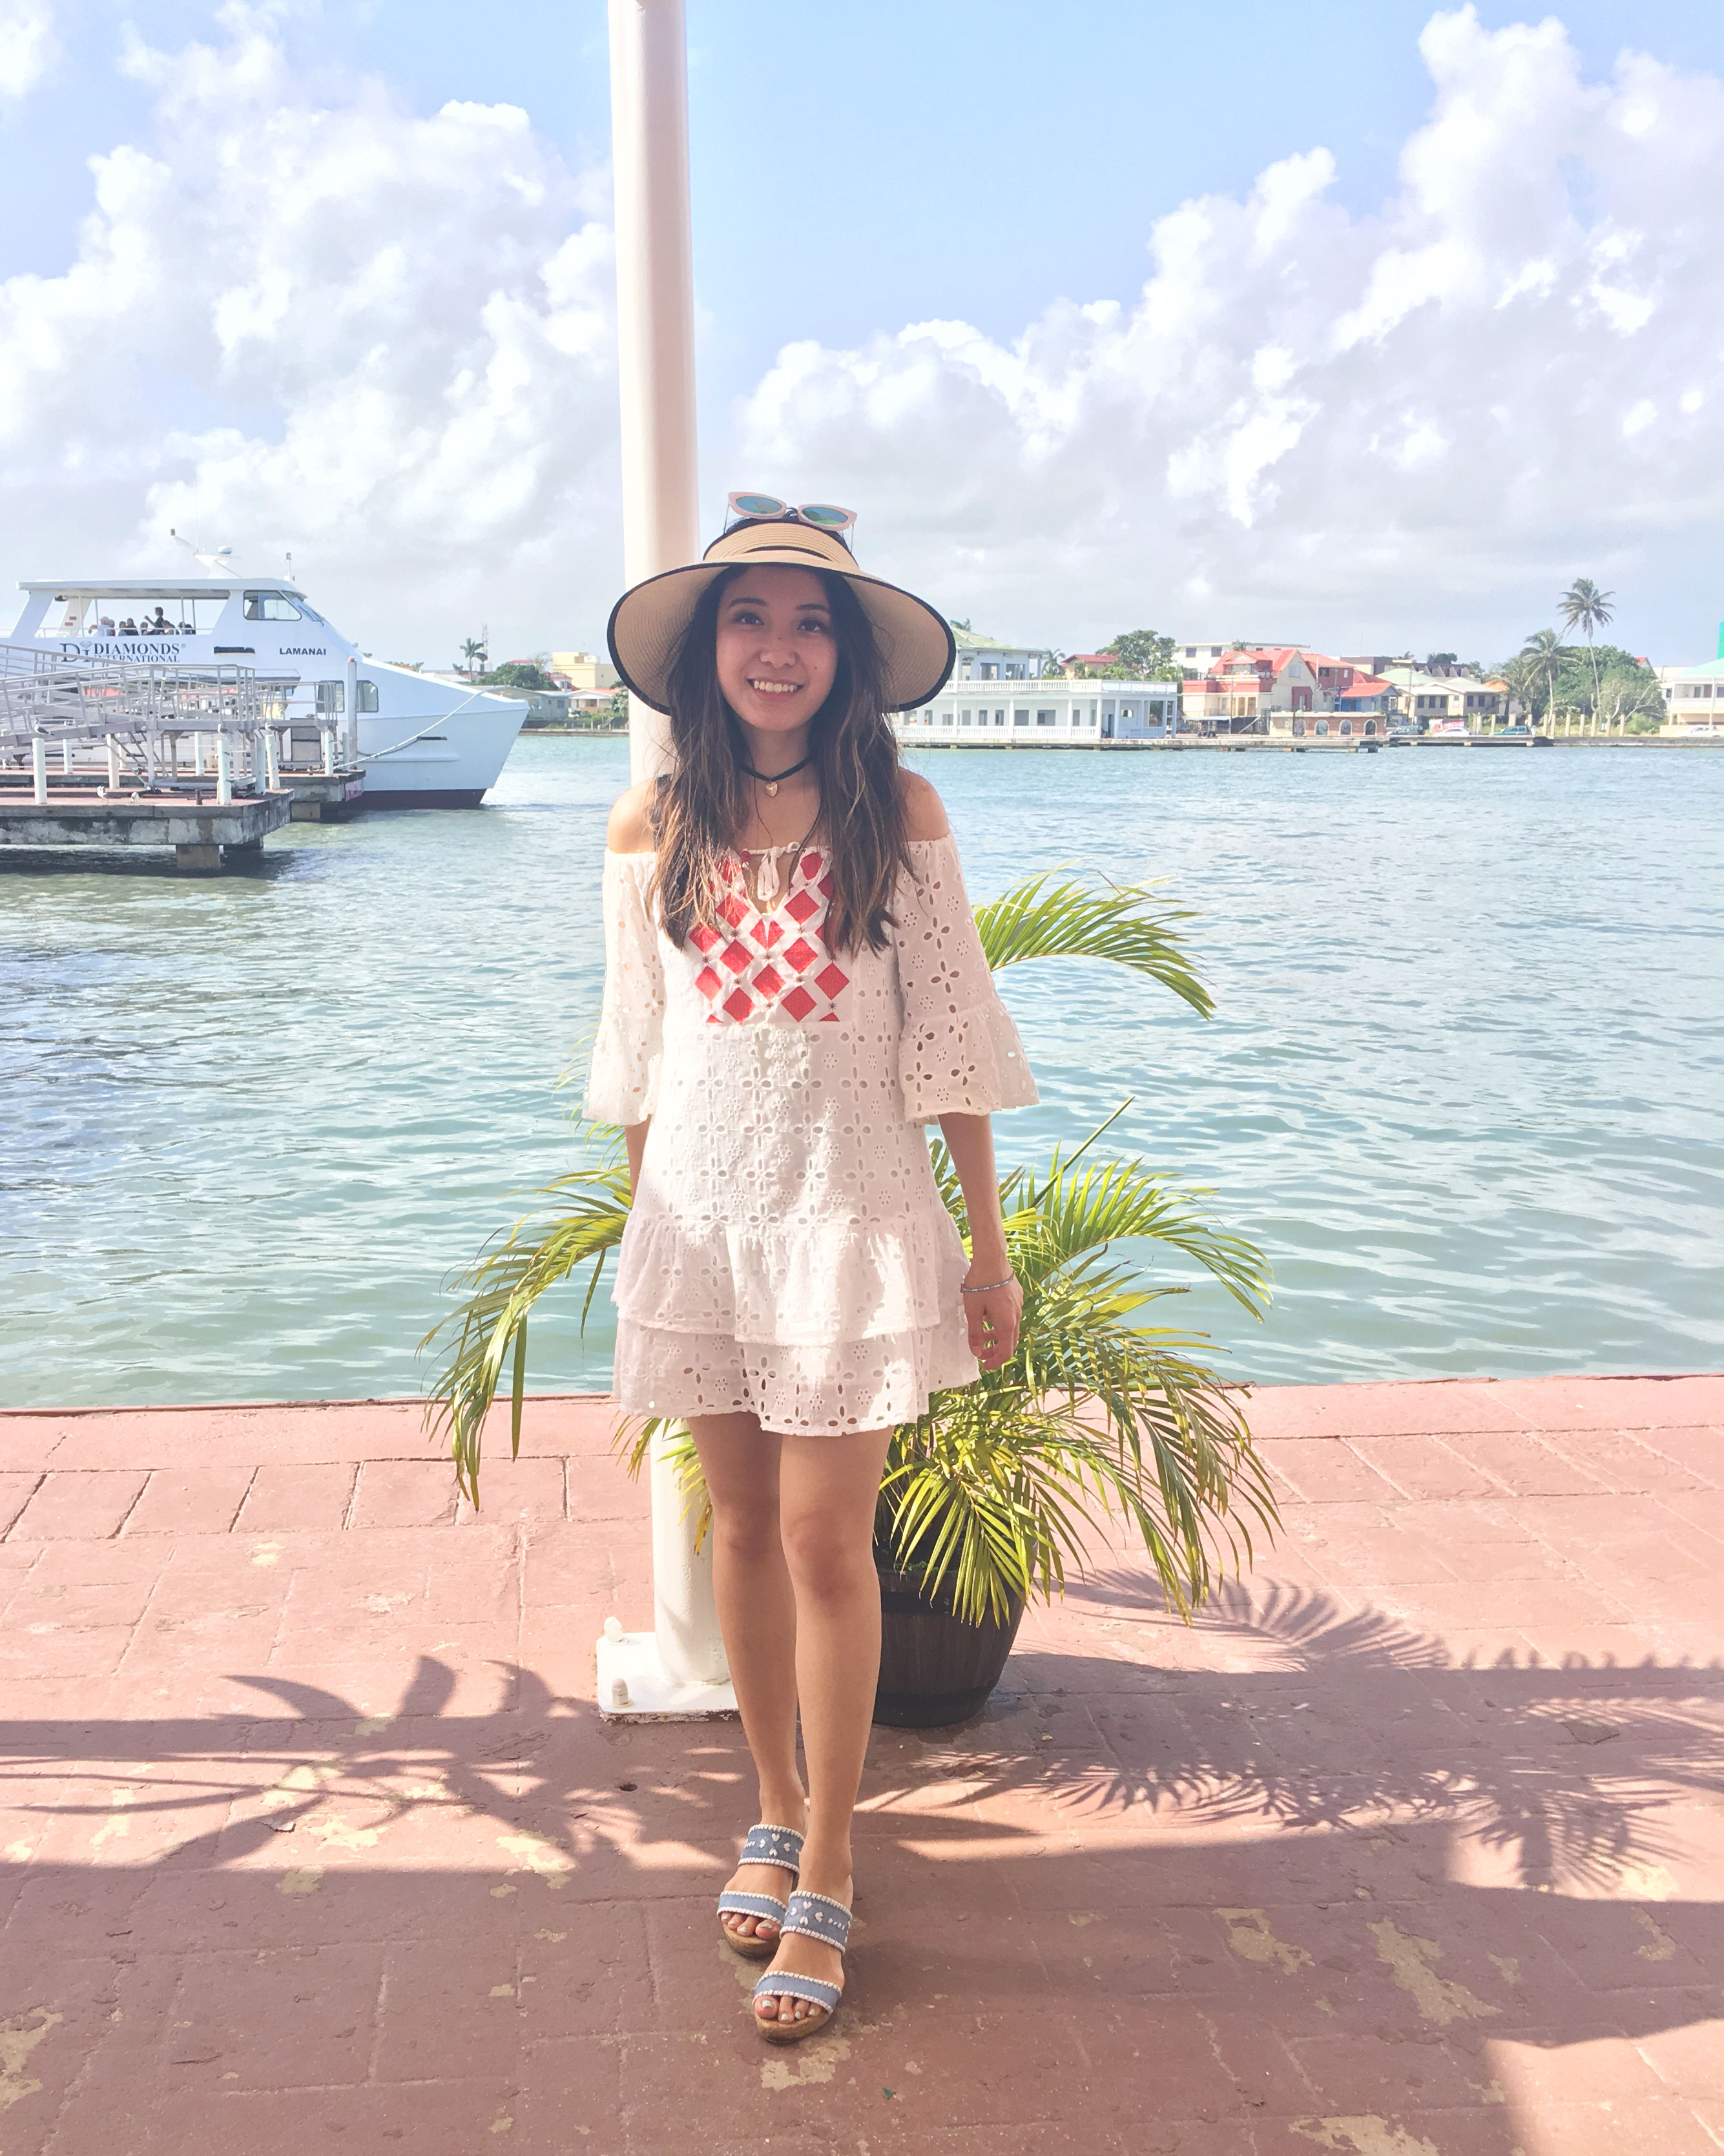 White off the shoulder dress and straw hat in Belize bay